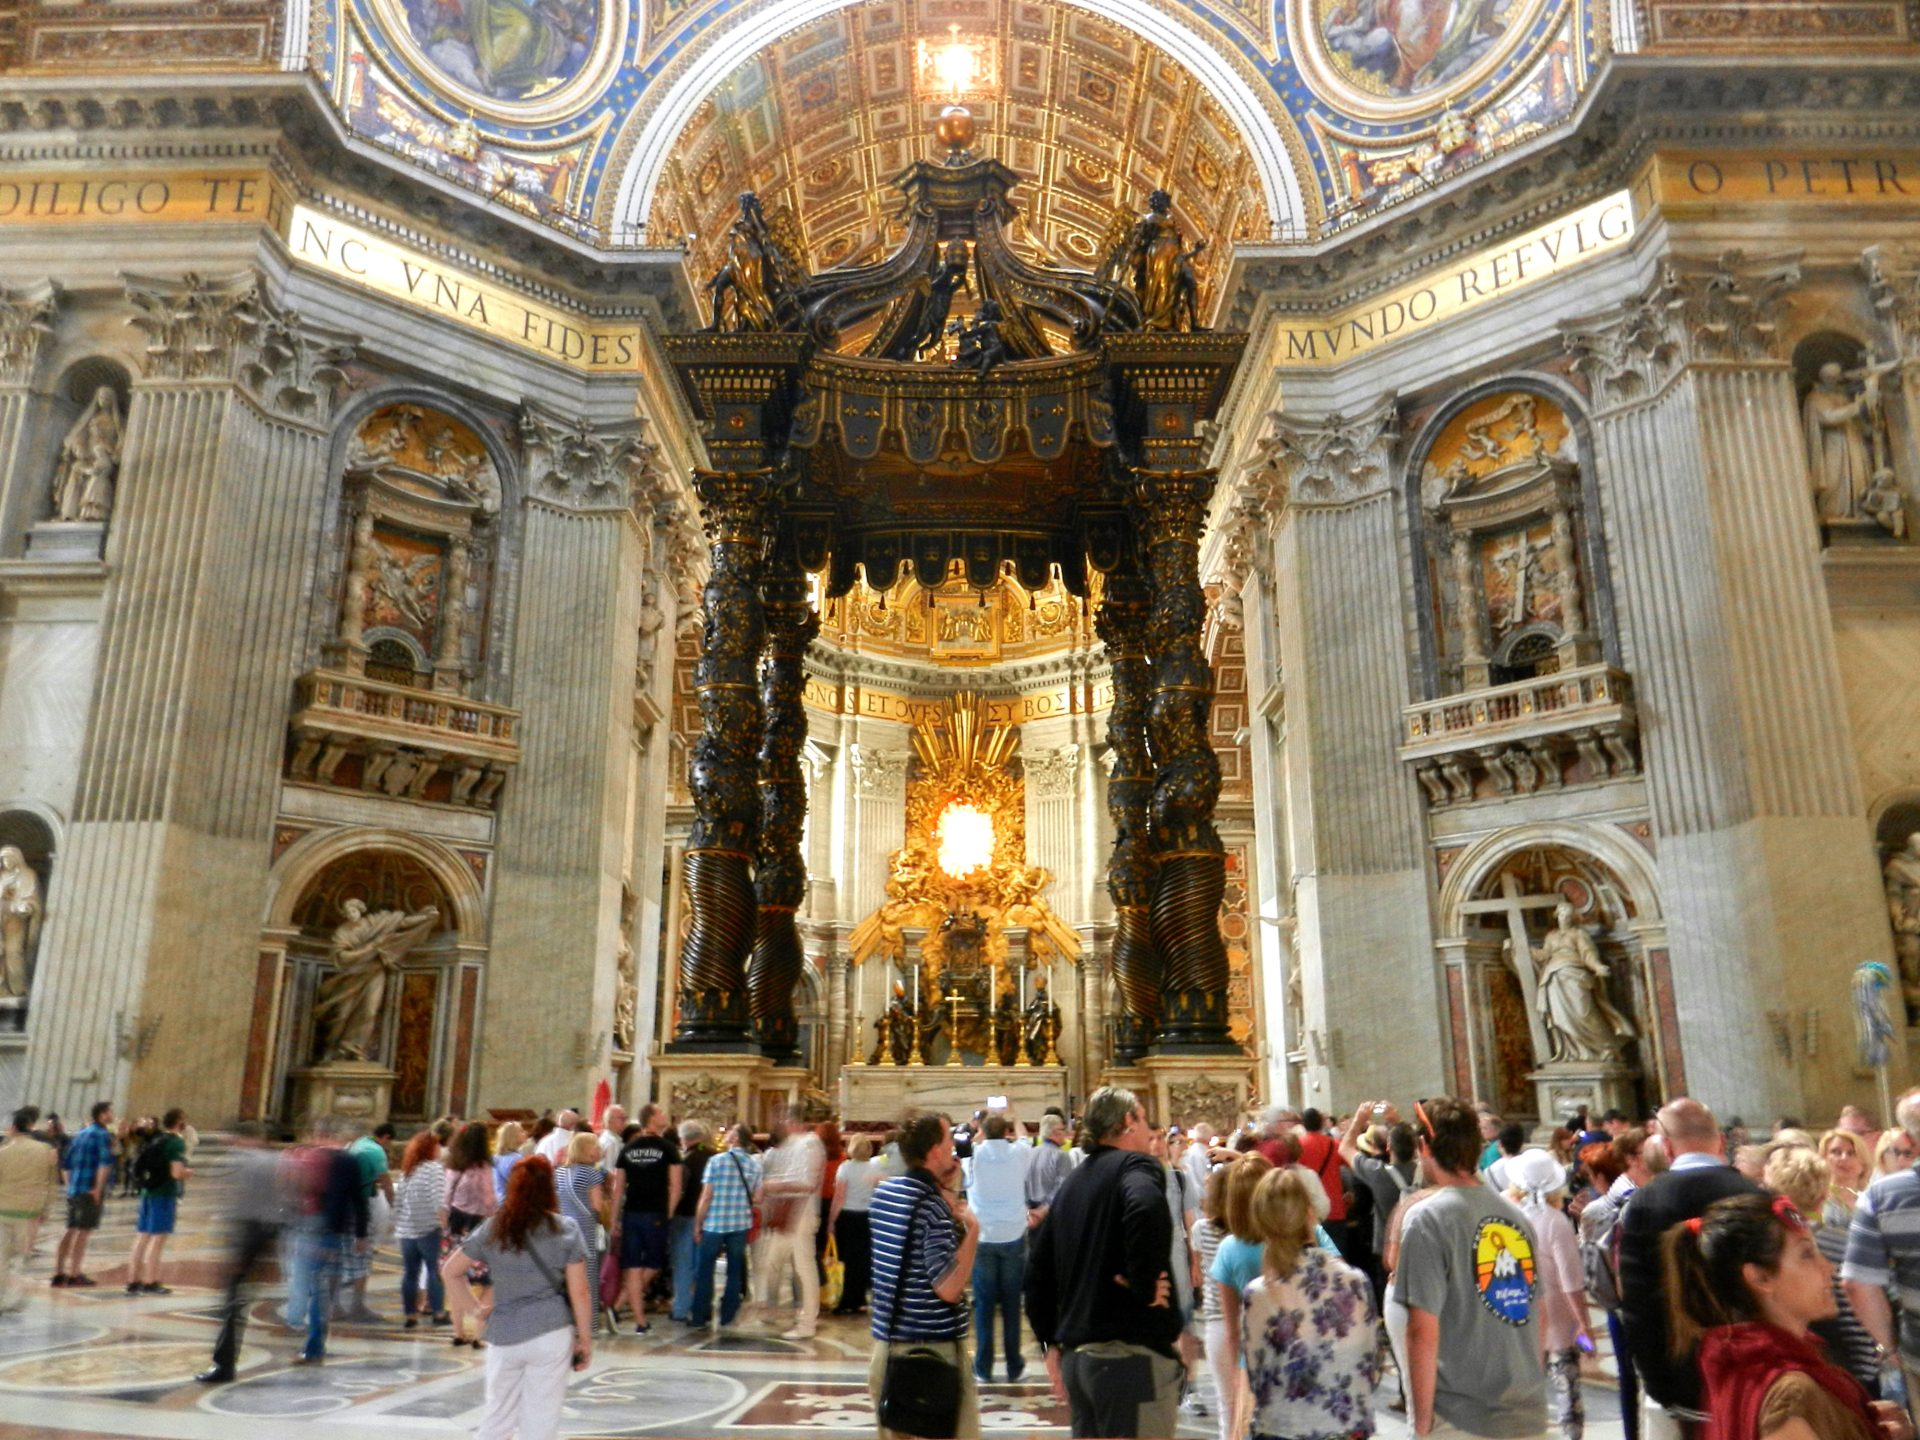 St Peter S Baldachin Vatican Italy The Incredibly